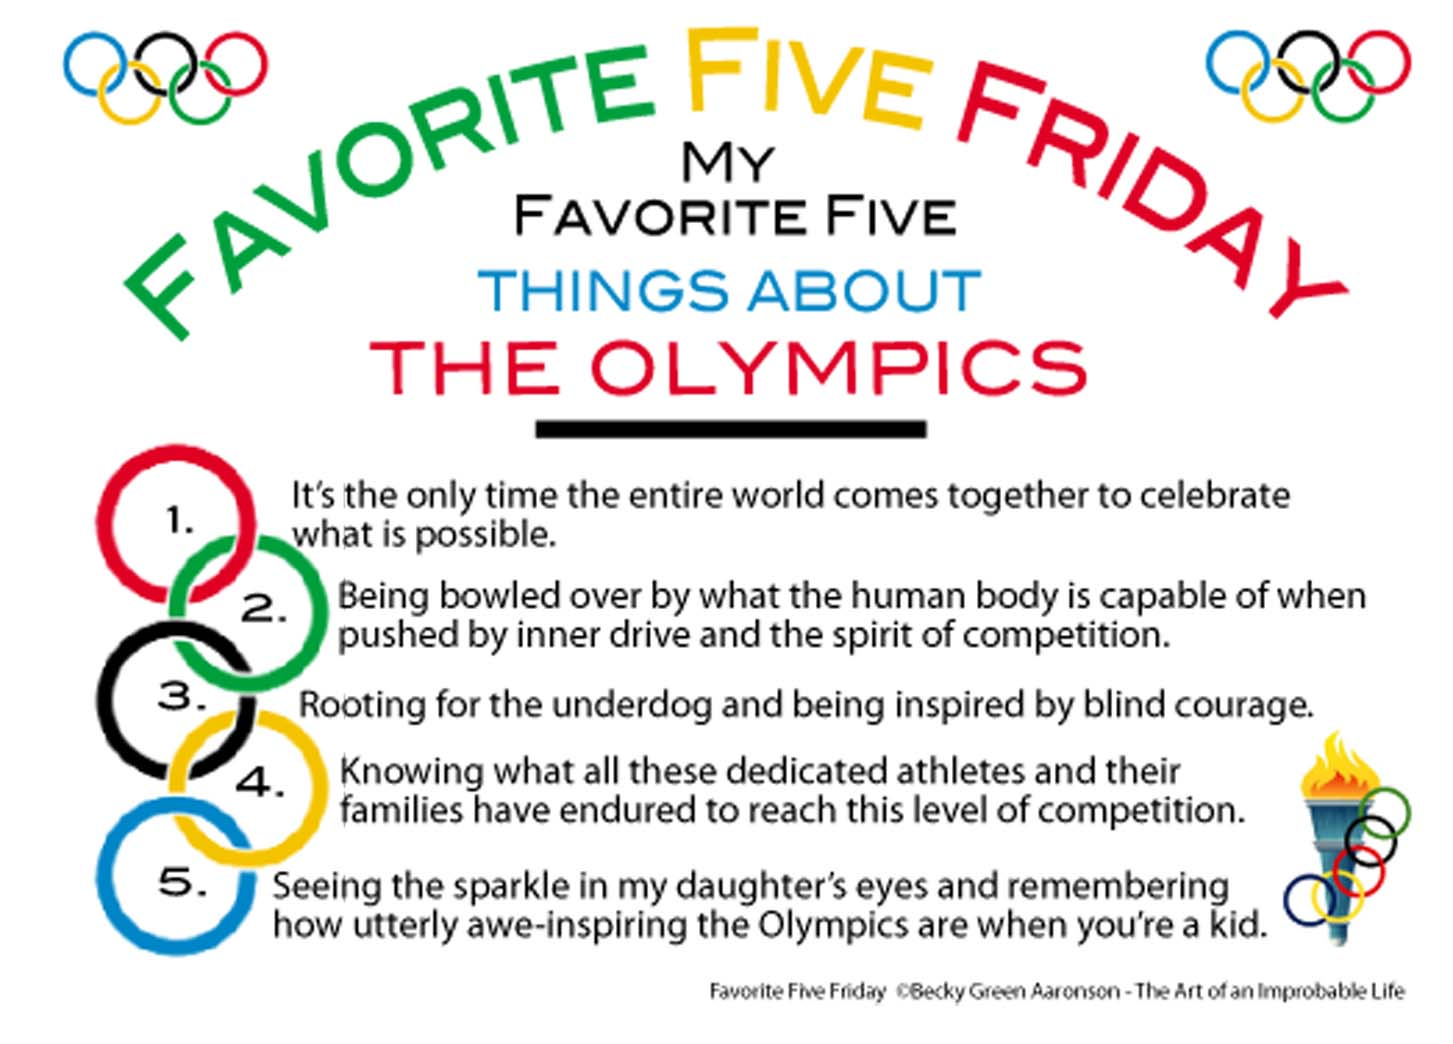 Favorite Five Friday The Olympics